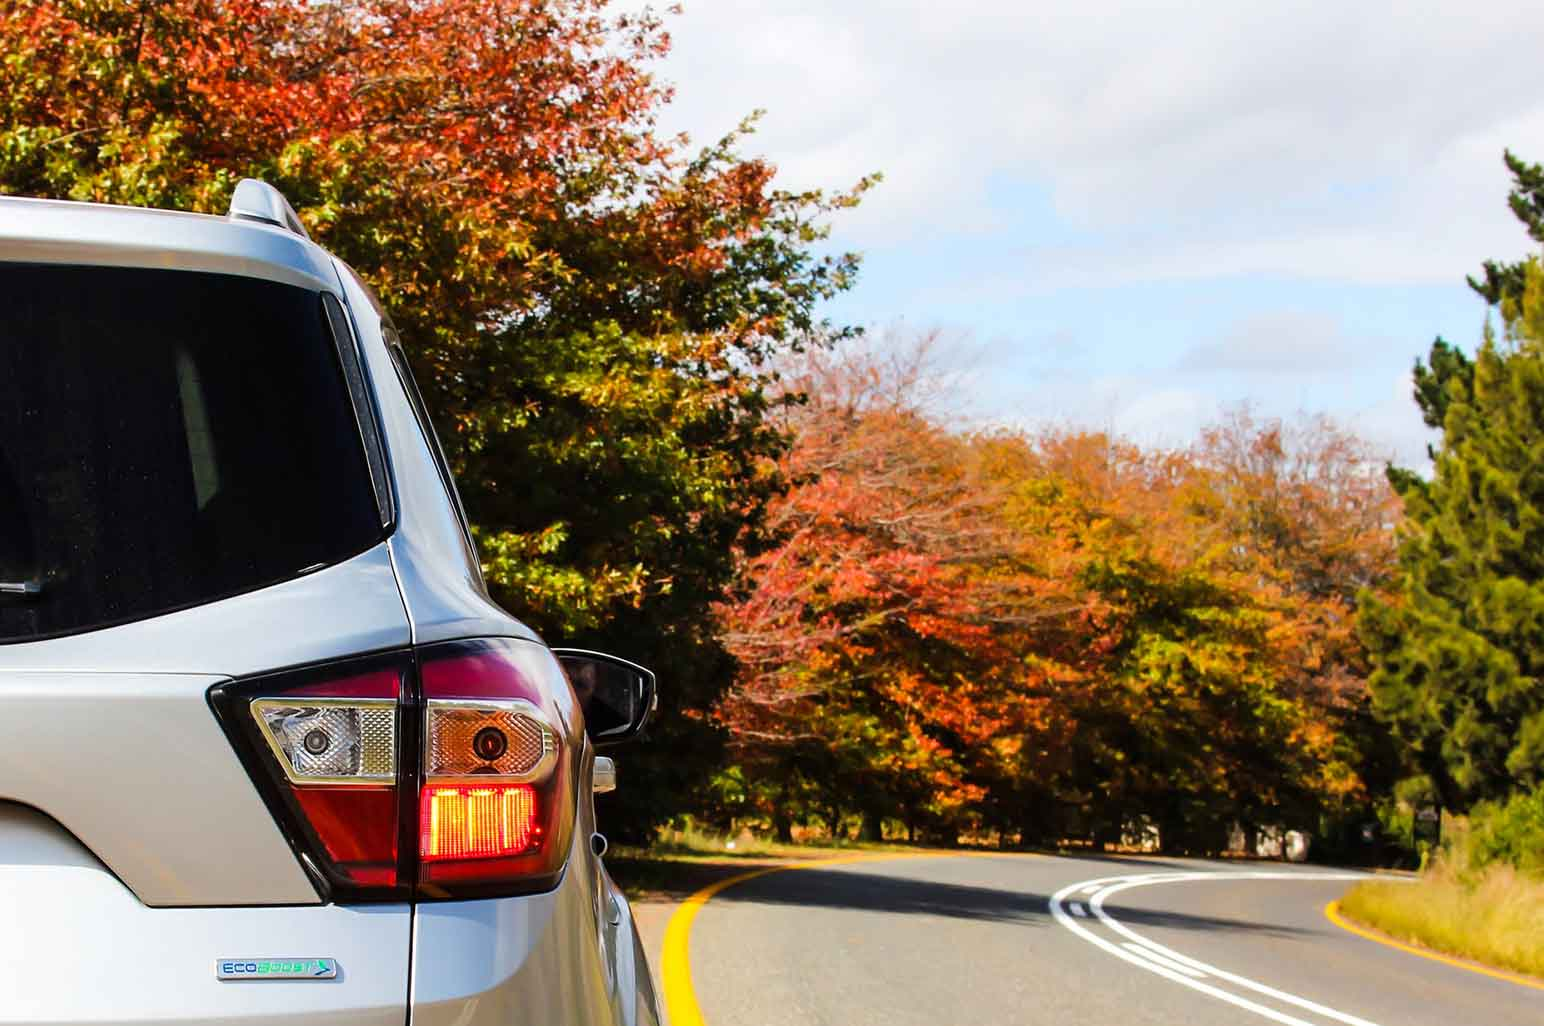 How Using a Rental Car After a Crash Impacts Your Lifestyle